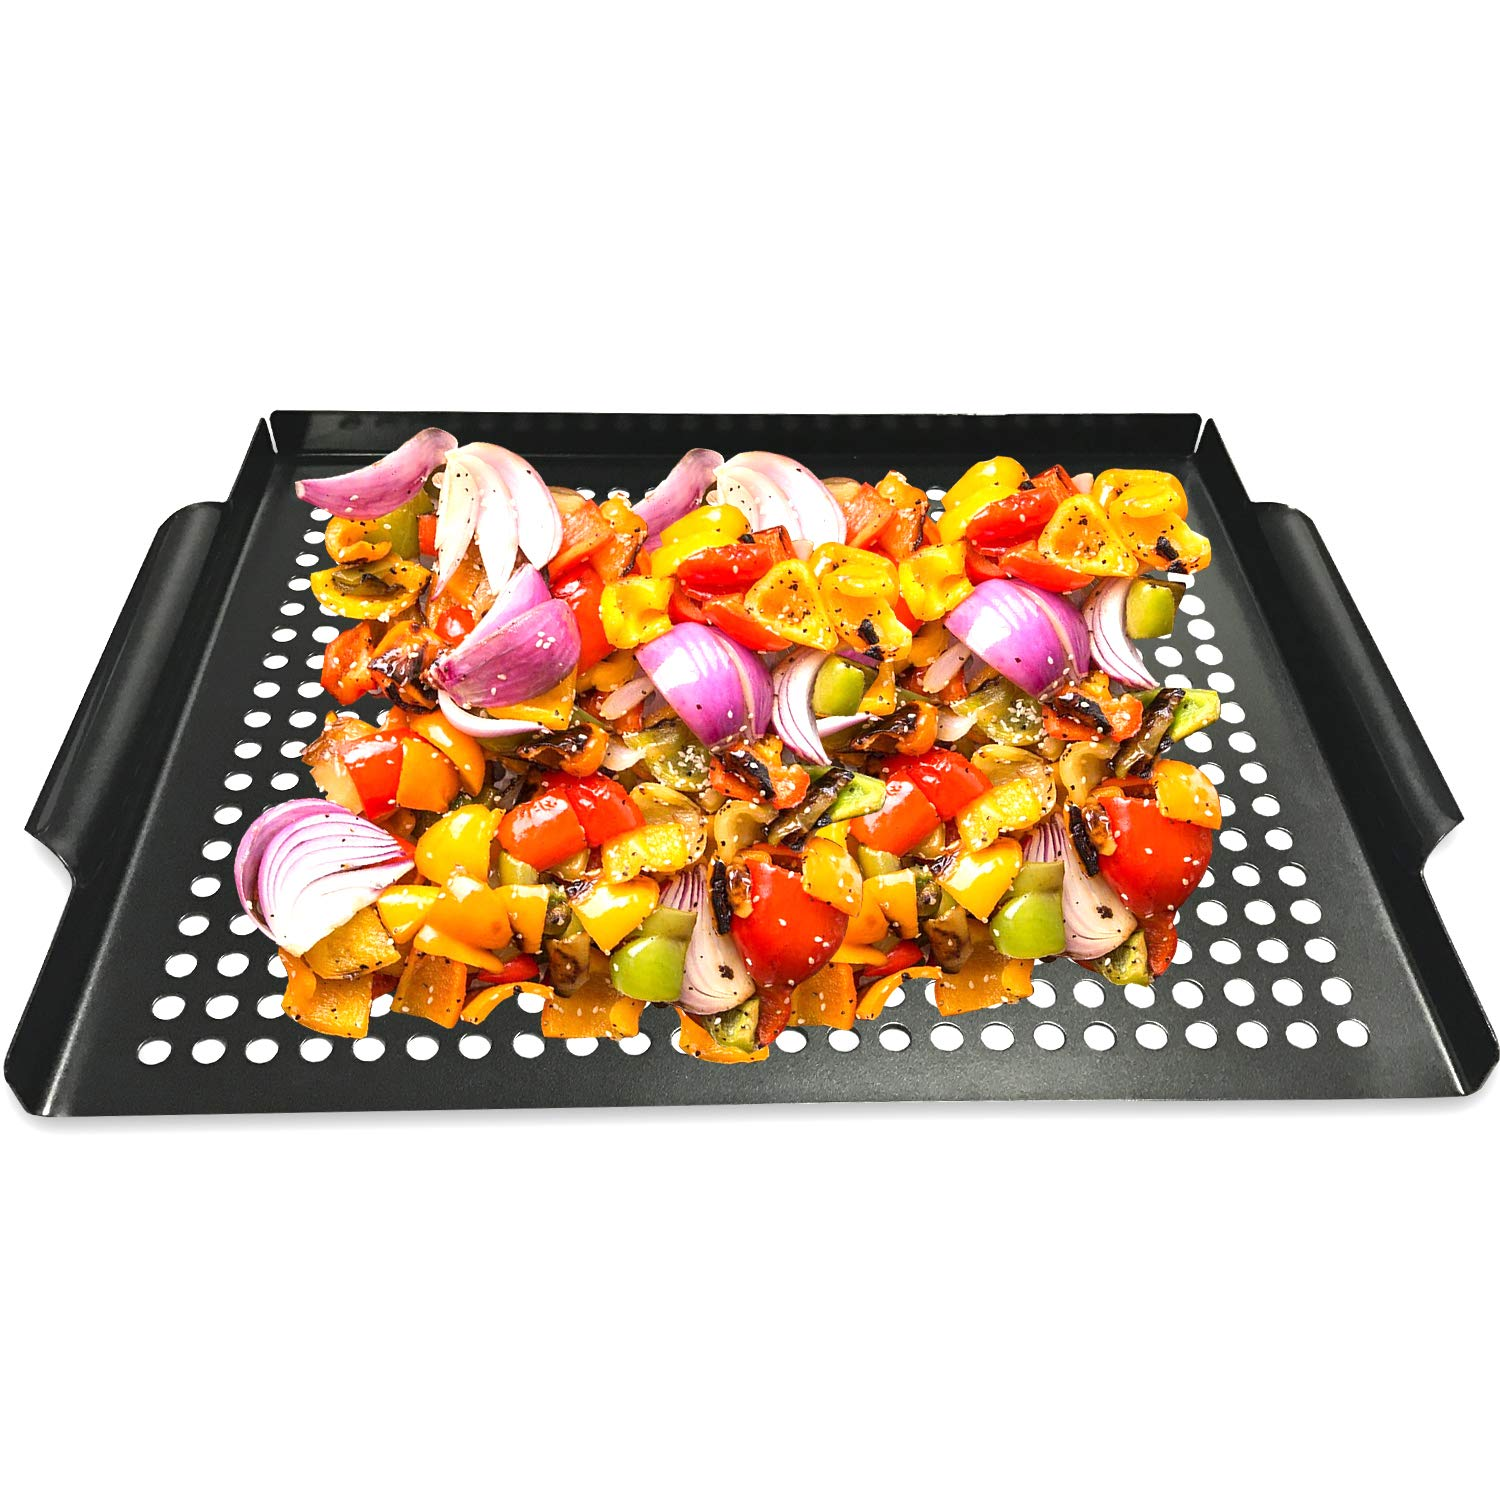 MEHE Grill Basket, Thicken Will not Warped, Nonstick Grilling Topper 14.6''x11.4 Grill Pan BBQ Accessory for Grilling Vegetable, Fish, Shrimp, Meat, Camping Cookware by MEHE